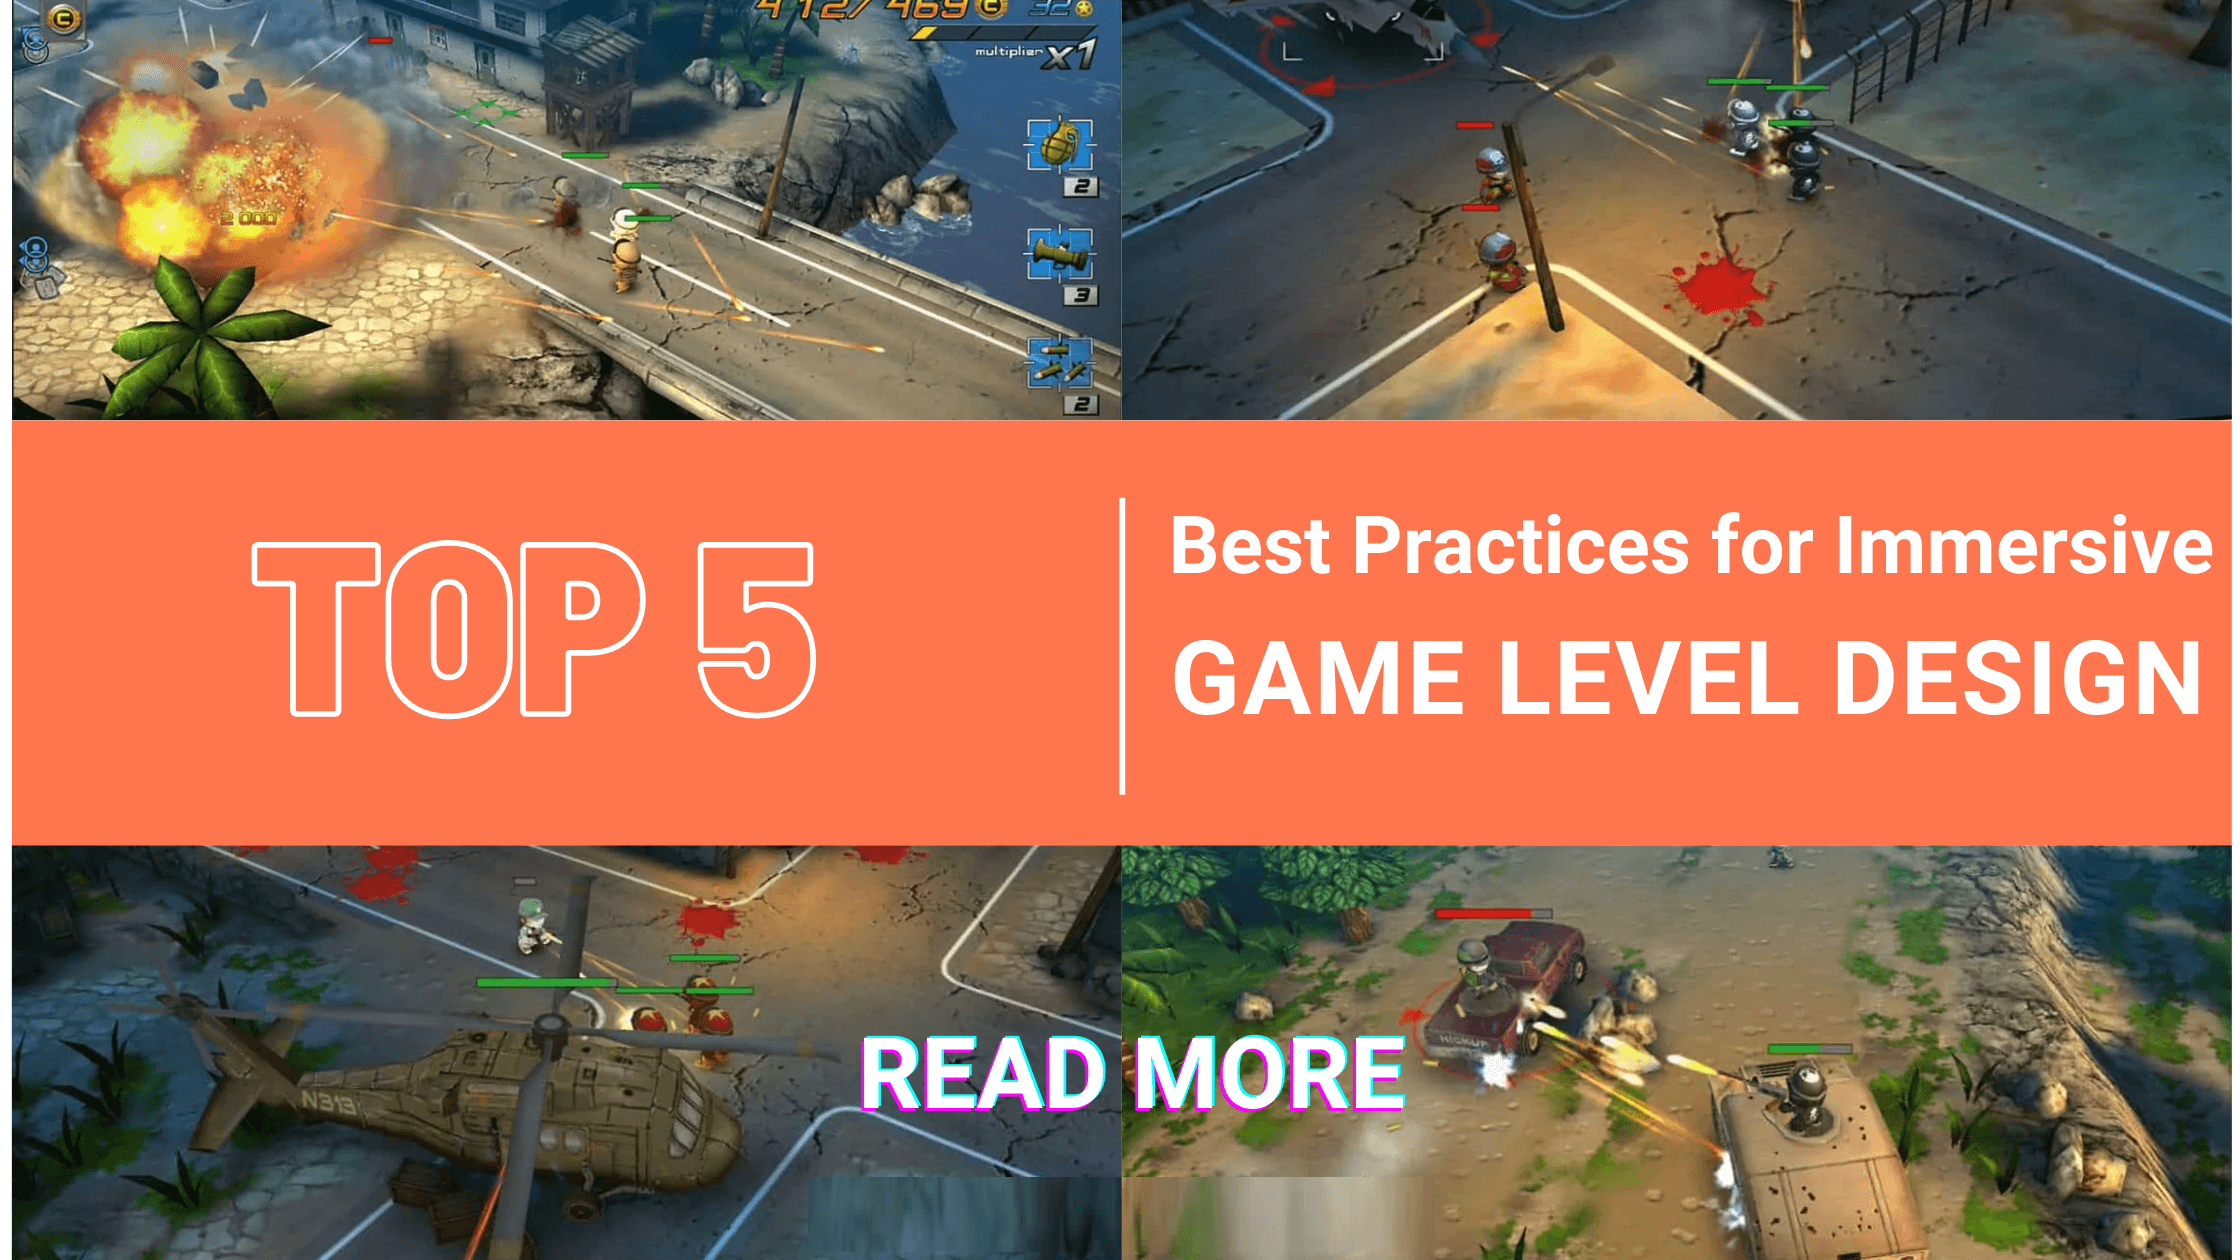 game level design banner